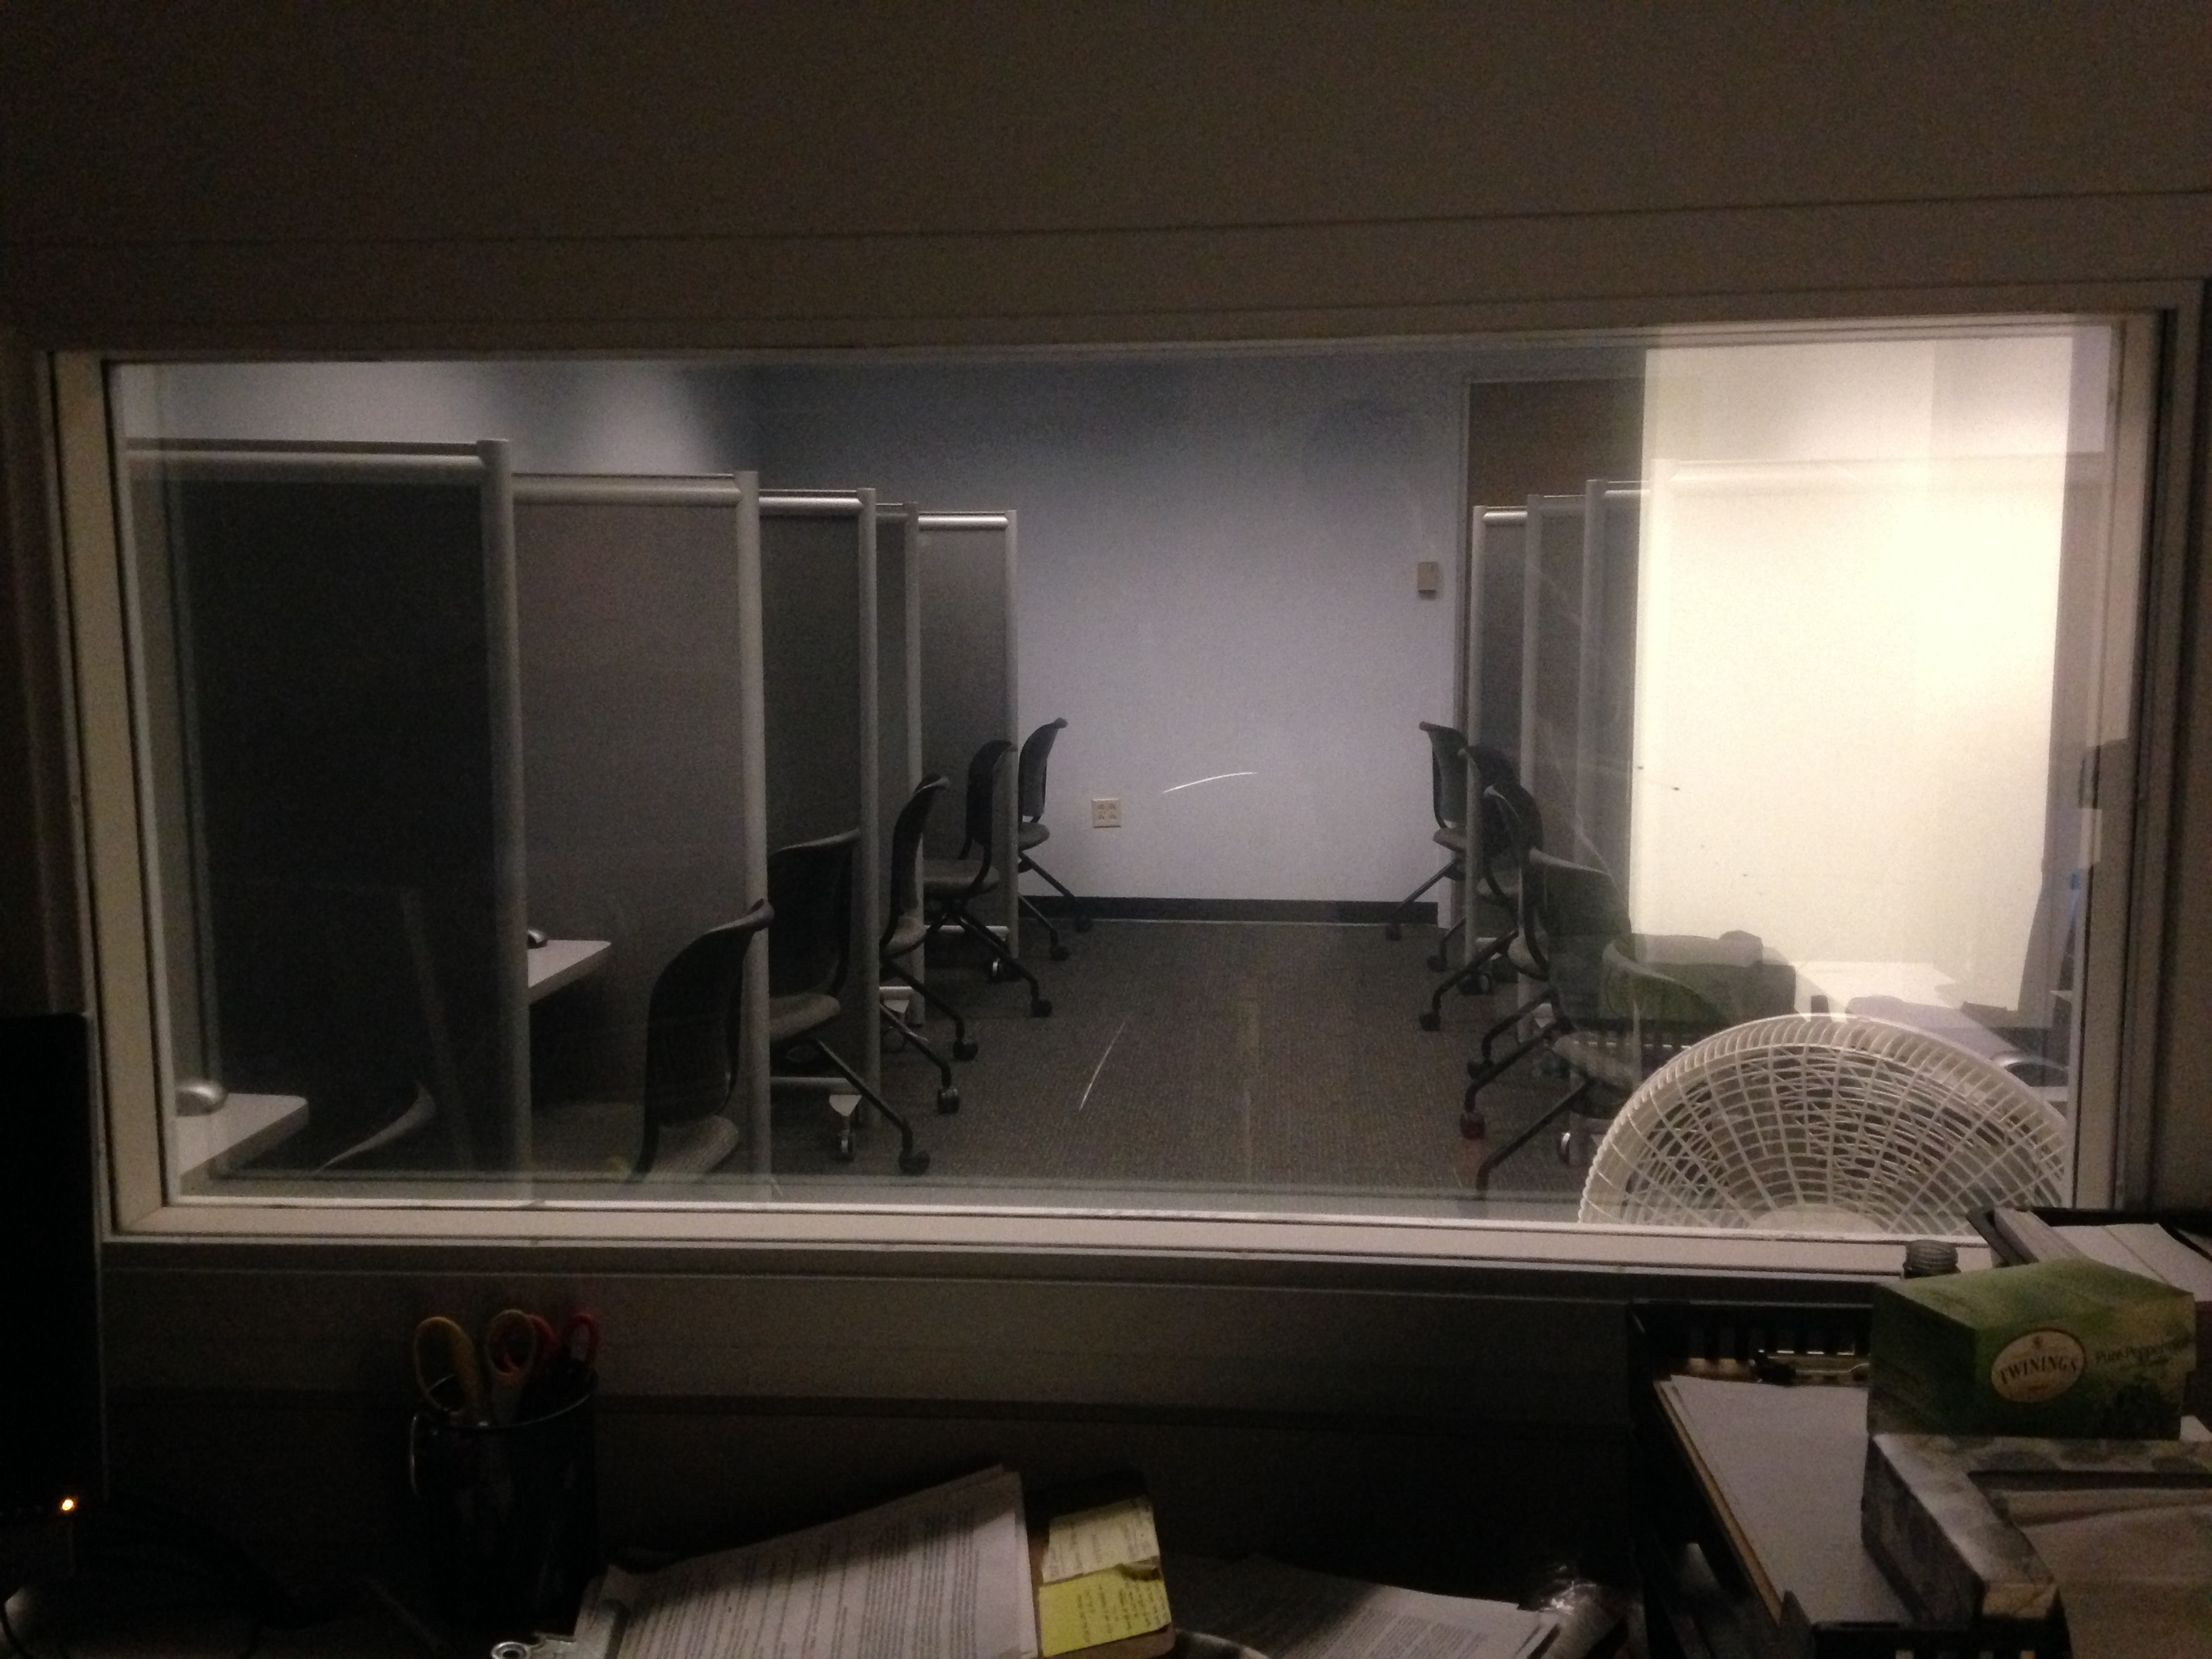 Social Psychology computer lab at The Ohio State University